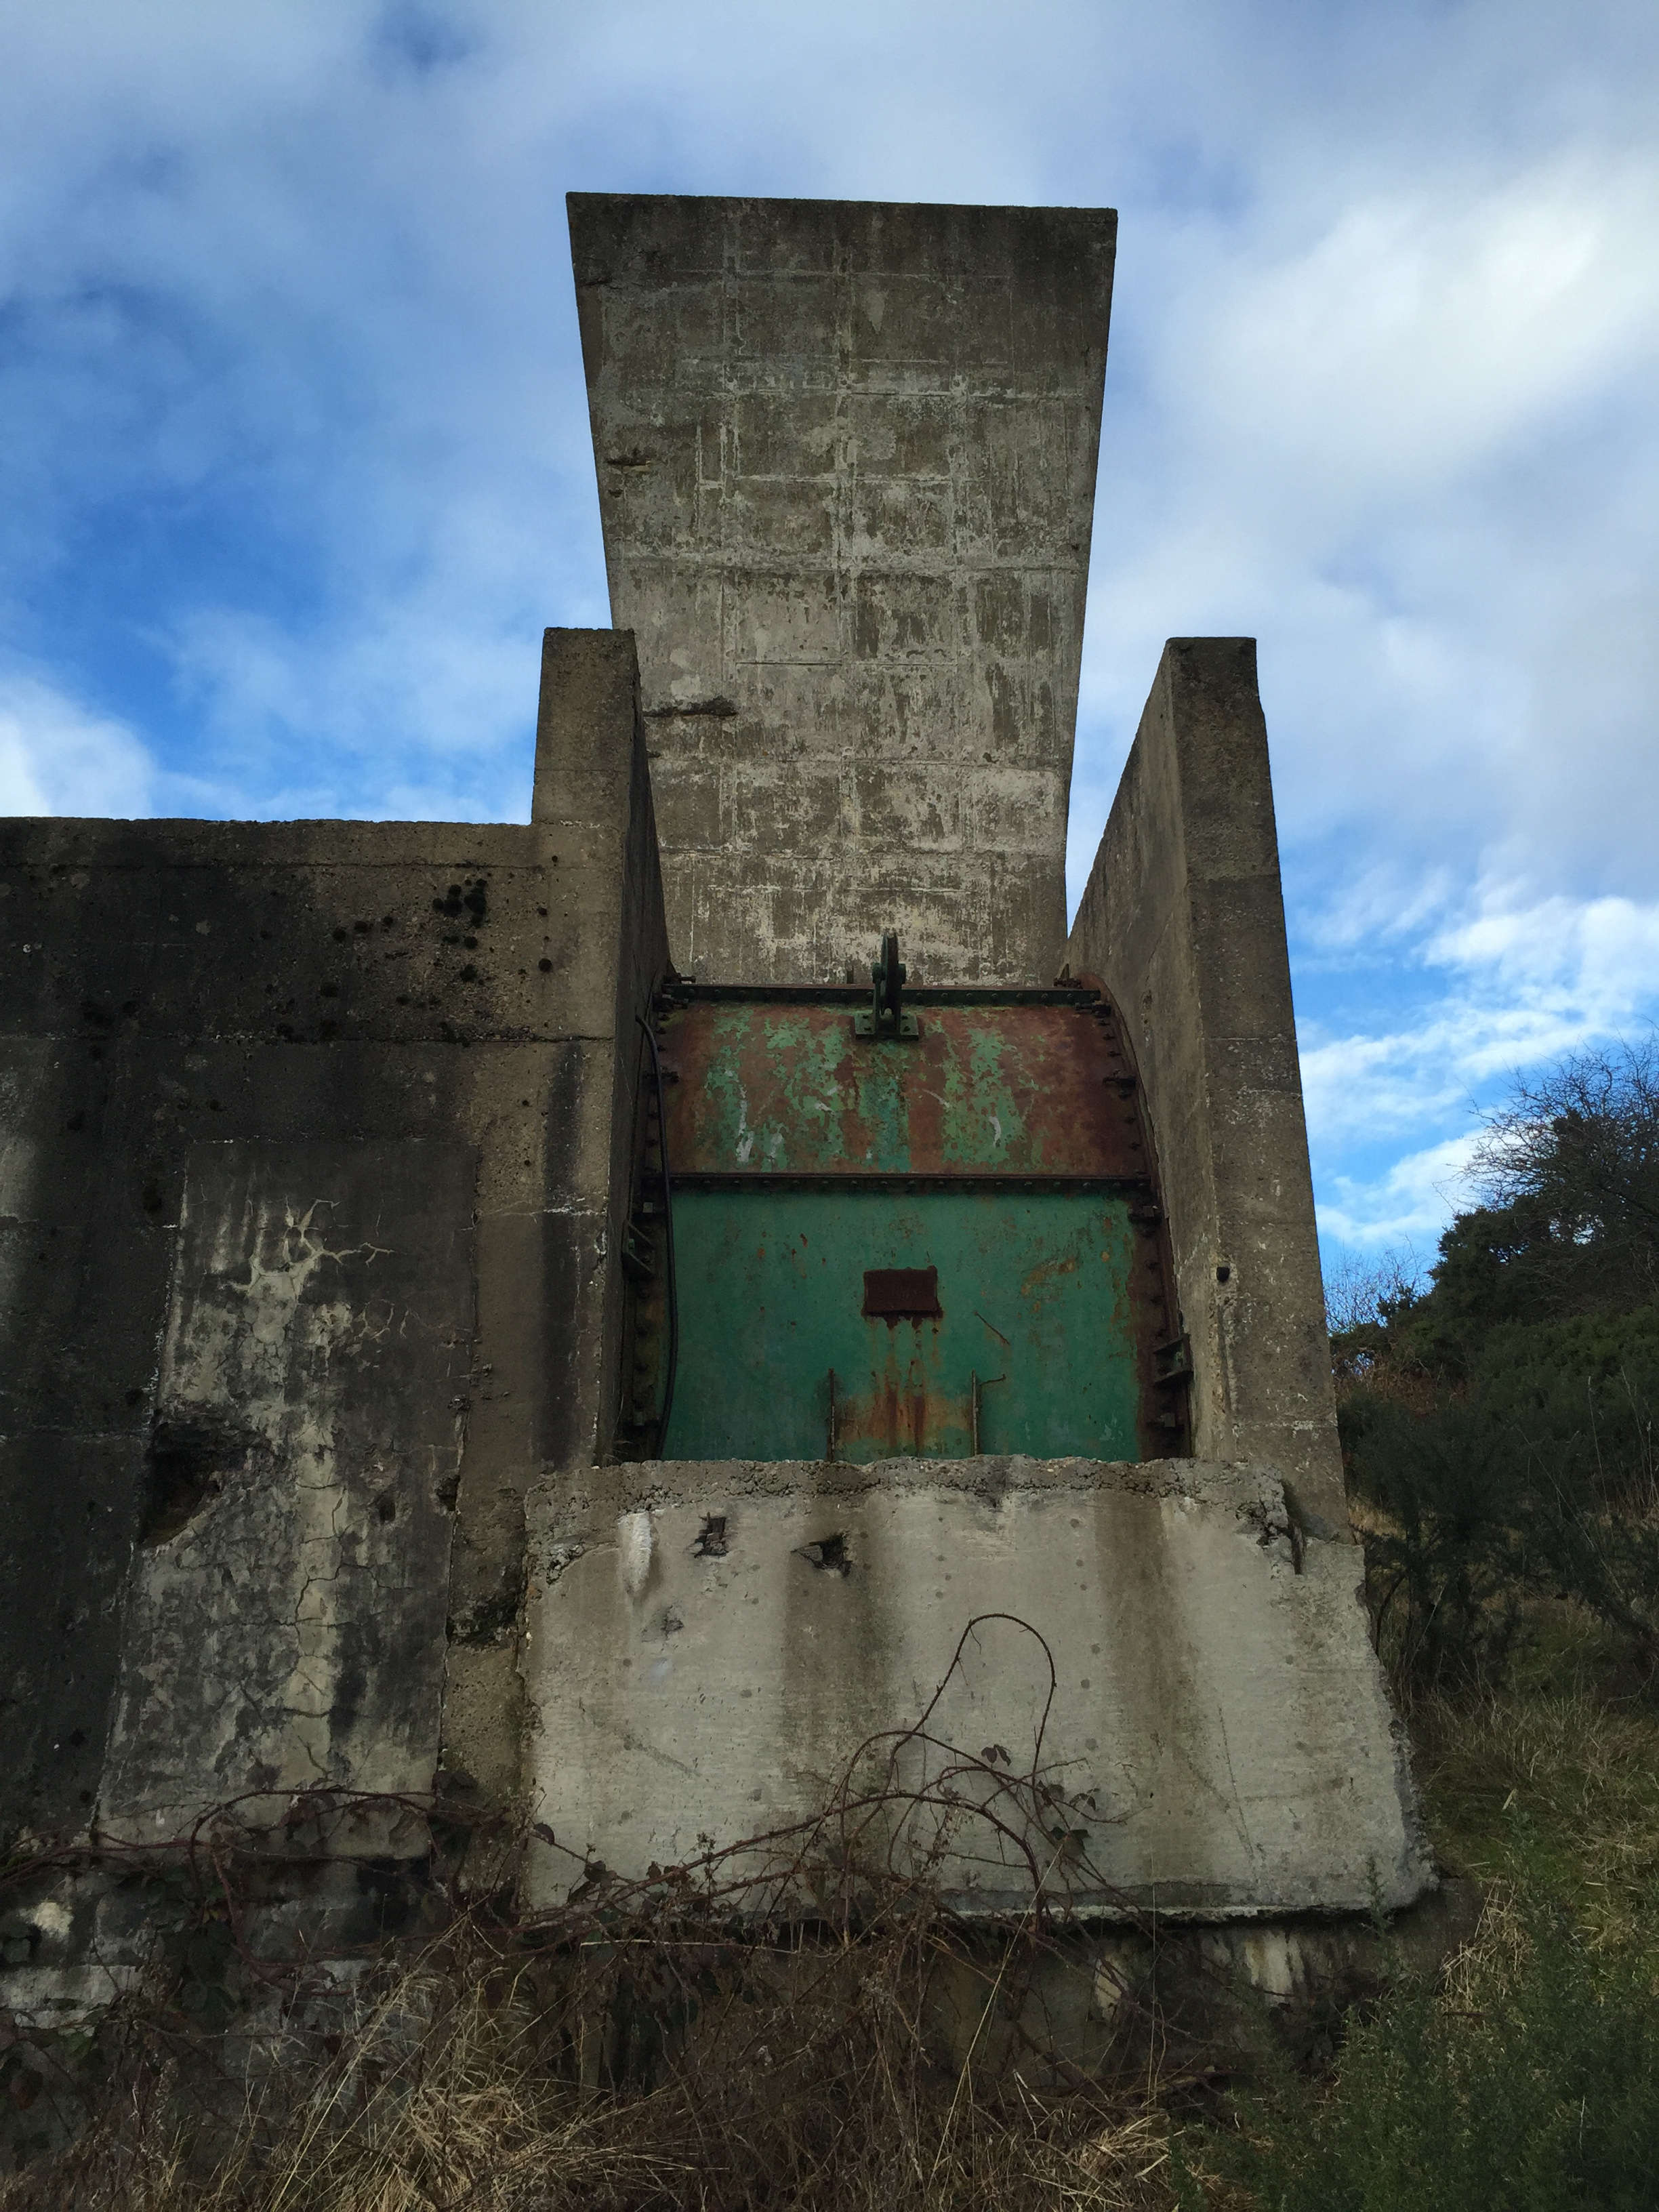 Eden Colliery Air Shaft. Photo Author's Collection